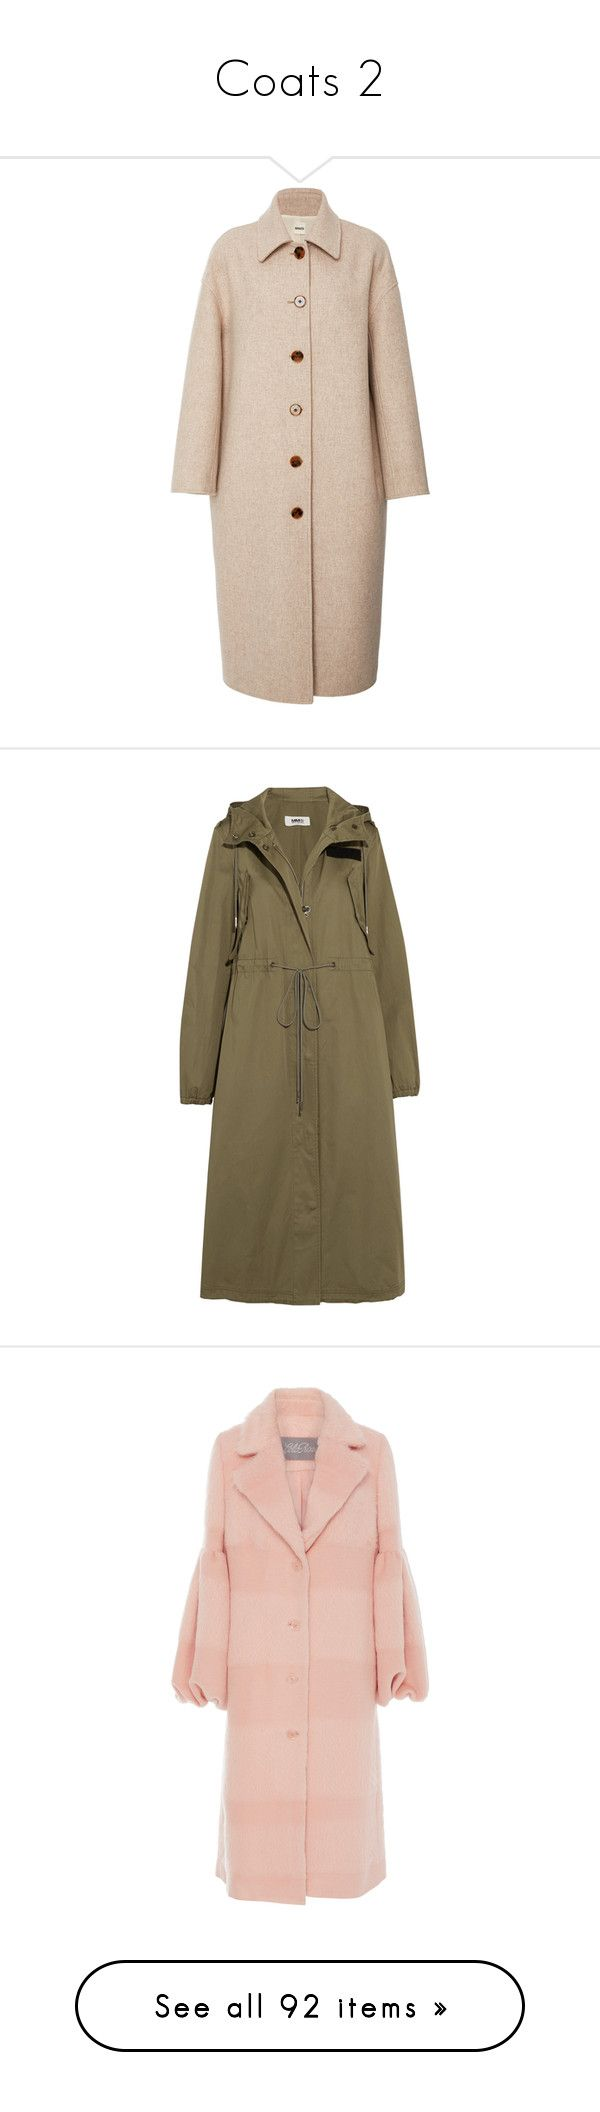 """""""Coats 2"""" by yyvonne881038 ❤ liked on Polyvore featuring outerwear, coats, neutral, pink cocoon coat, pink coat, cocoon coats, jackets, army green, zip trench coat and brown trench coat"""